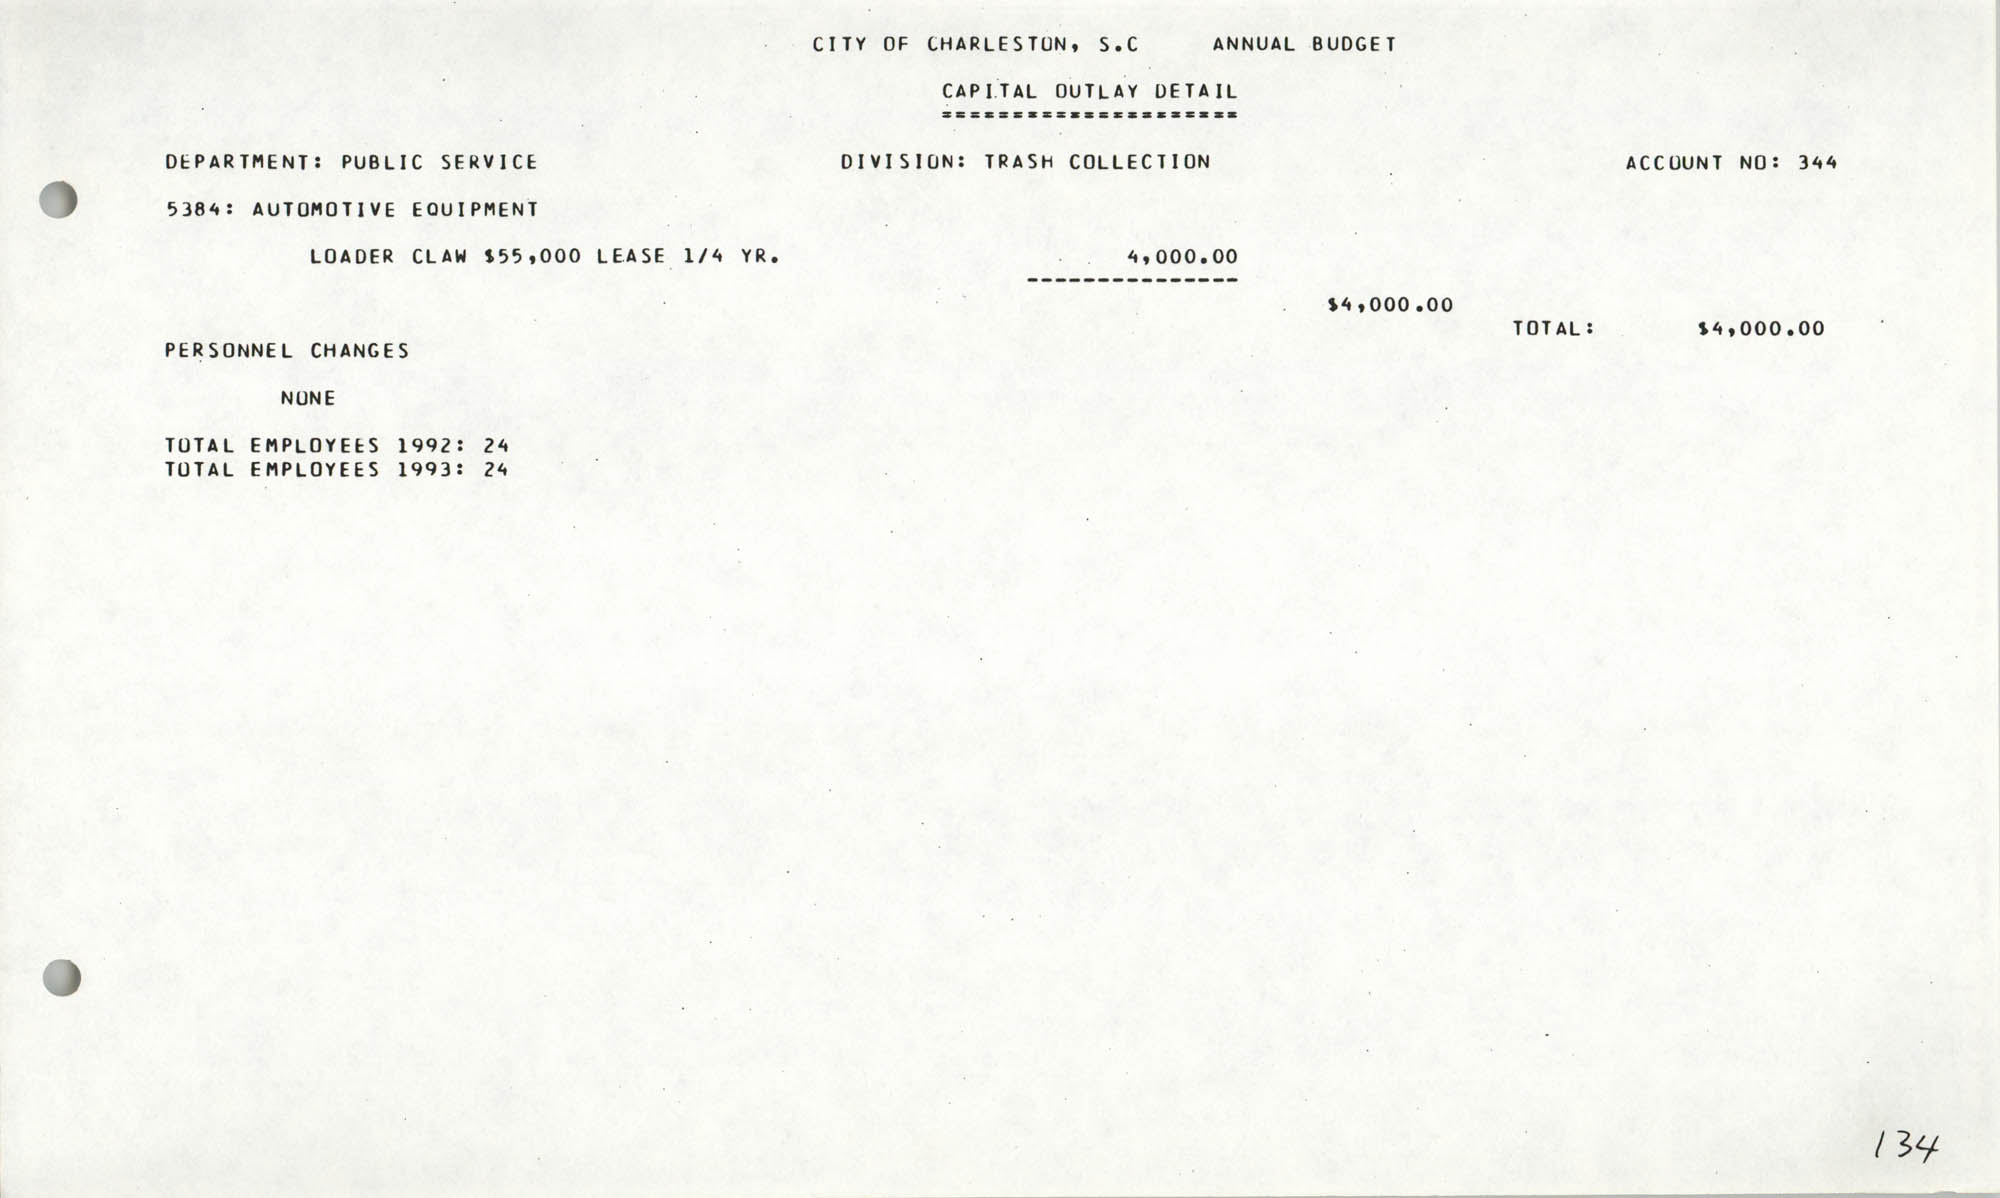 The City Council of Charleston, South Carolina, 1993 Budget, Page 134